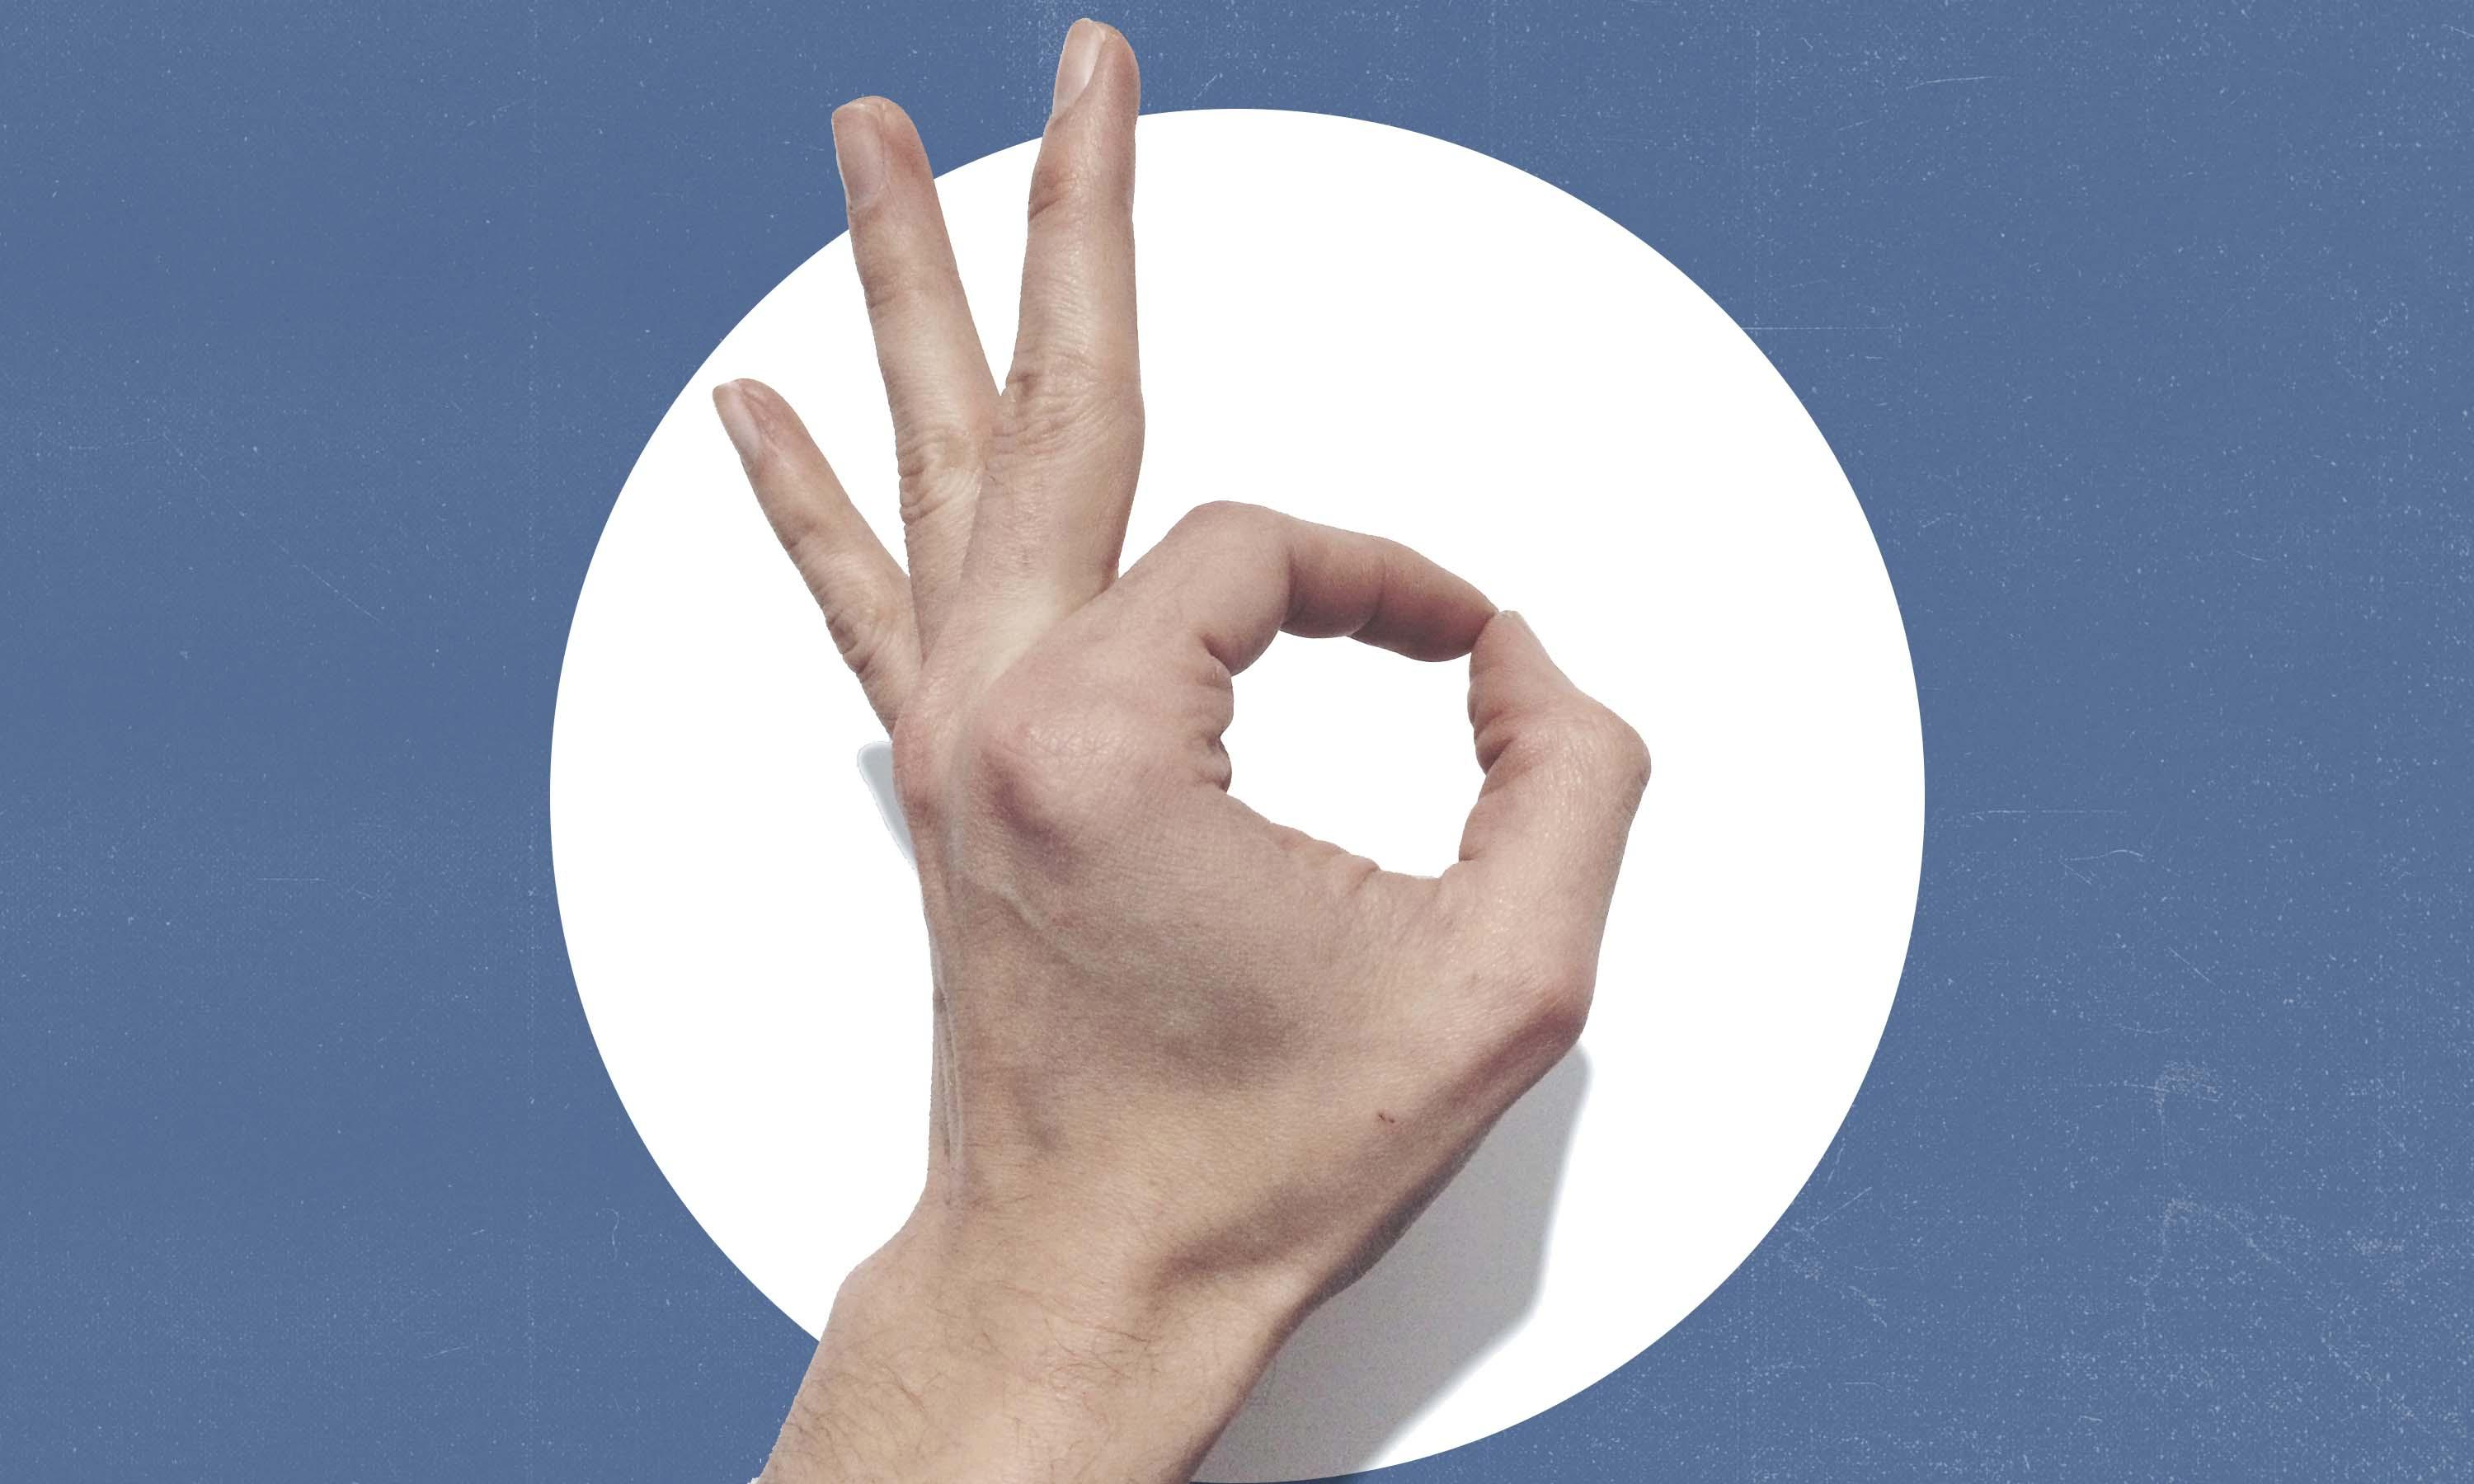 How the alt-right co-opted the OK hand sign to fool the media